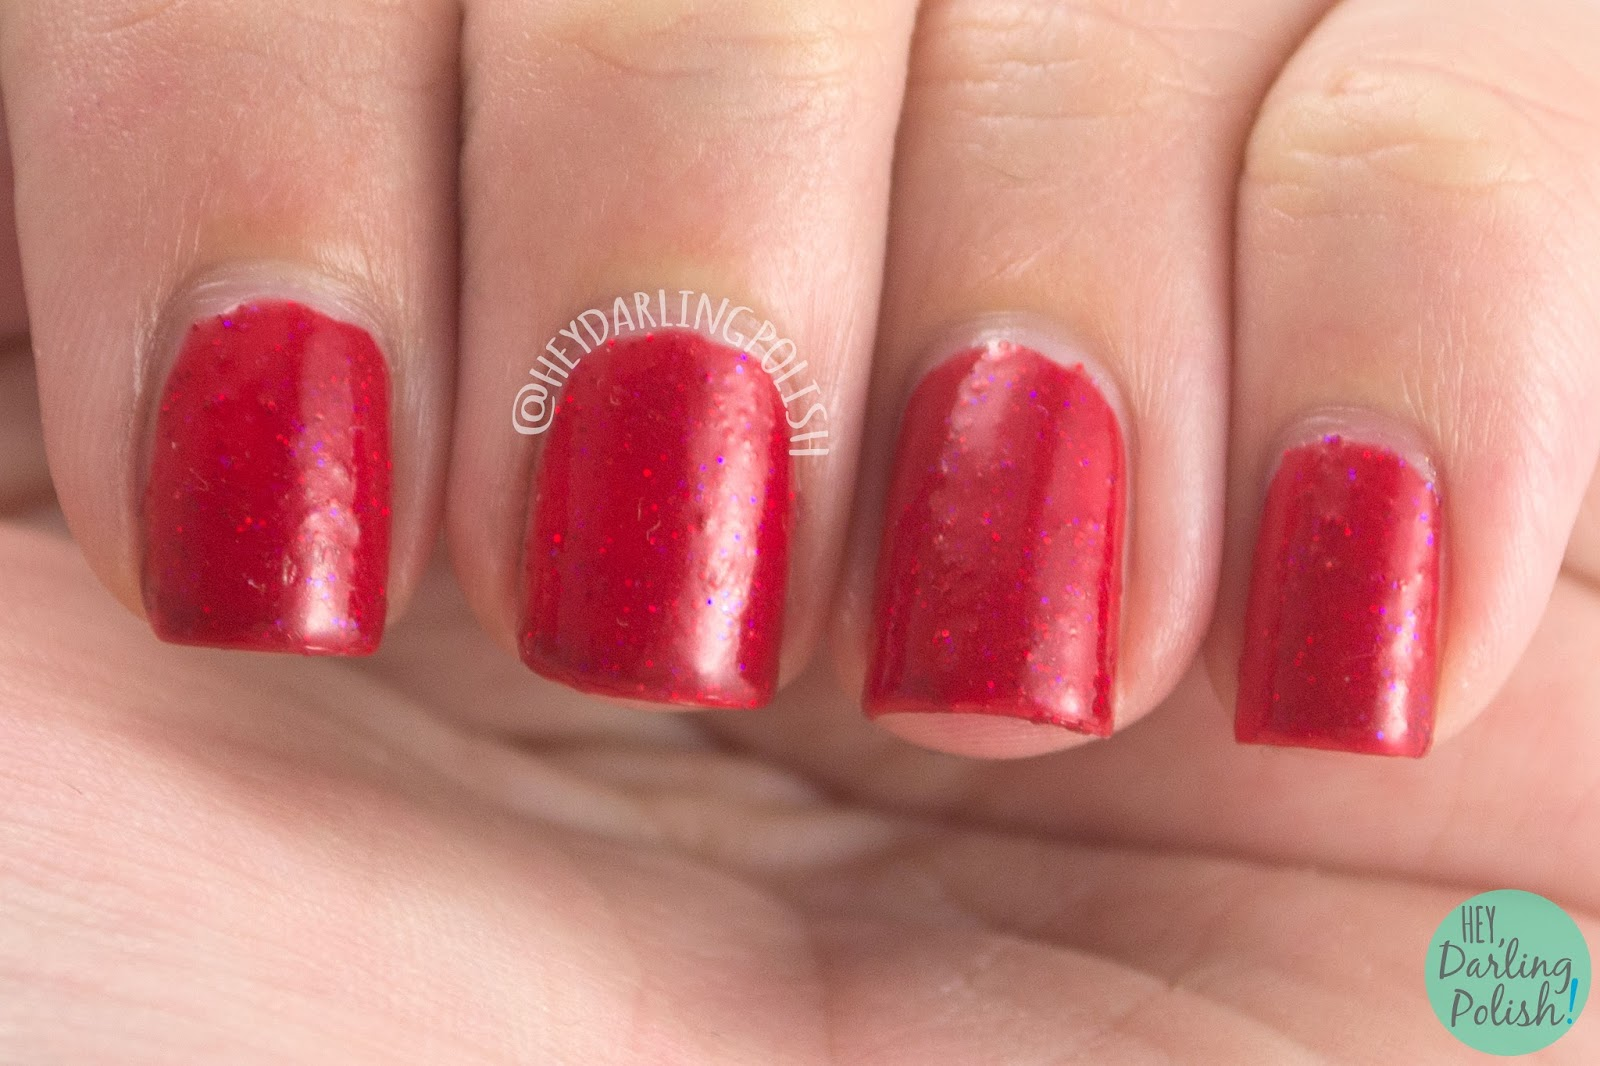 red, ginger, nails, nail polish, polish, indie nail polish, indie polish, nvr enuff polish, nvr enuff, spice world, spice girls, hey darling polish, swatch,